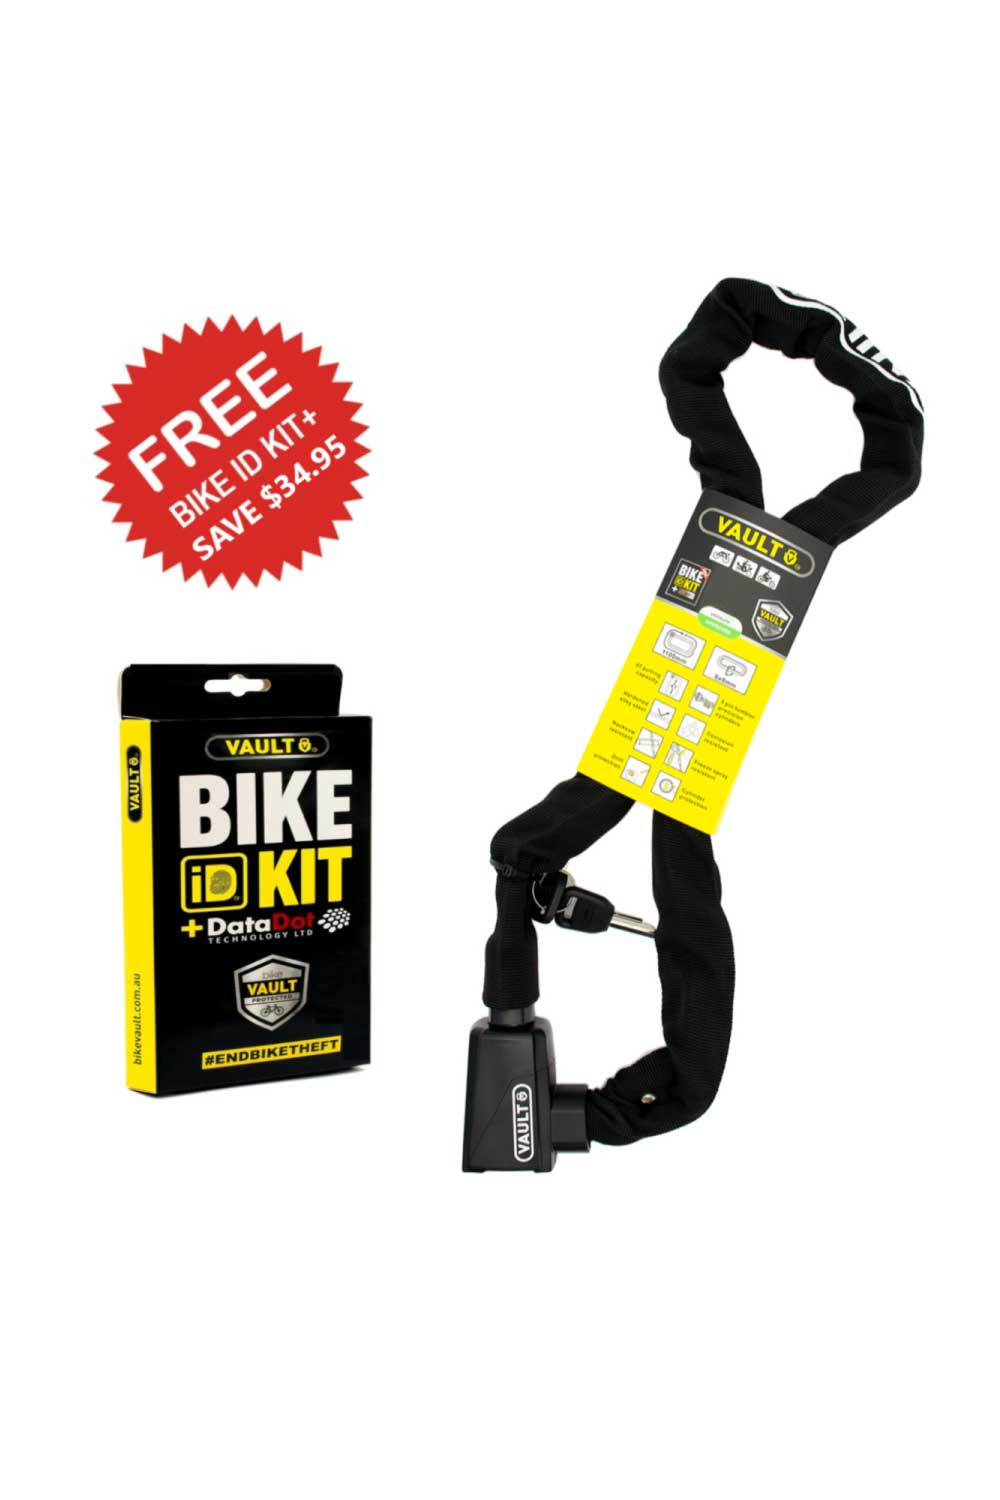 Vault Chain Lock with Bike ID Kit+